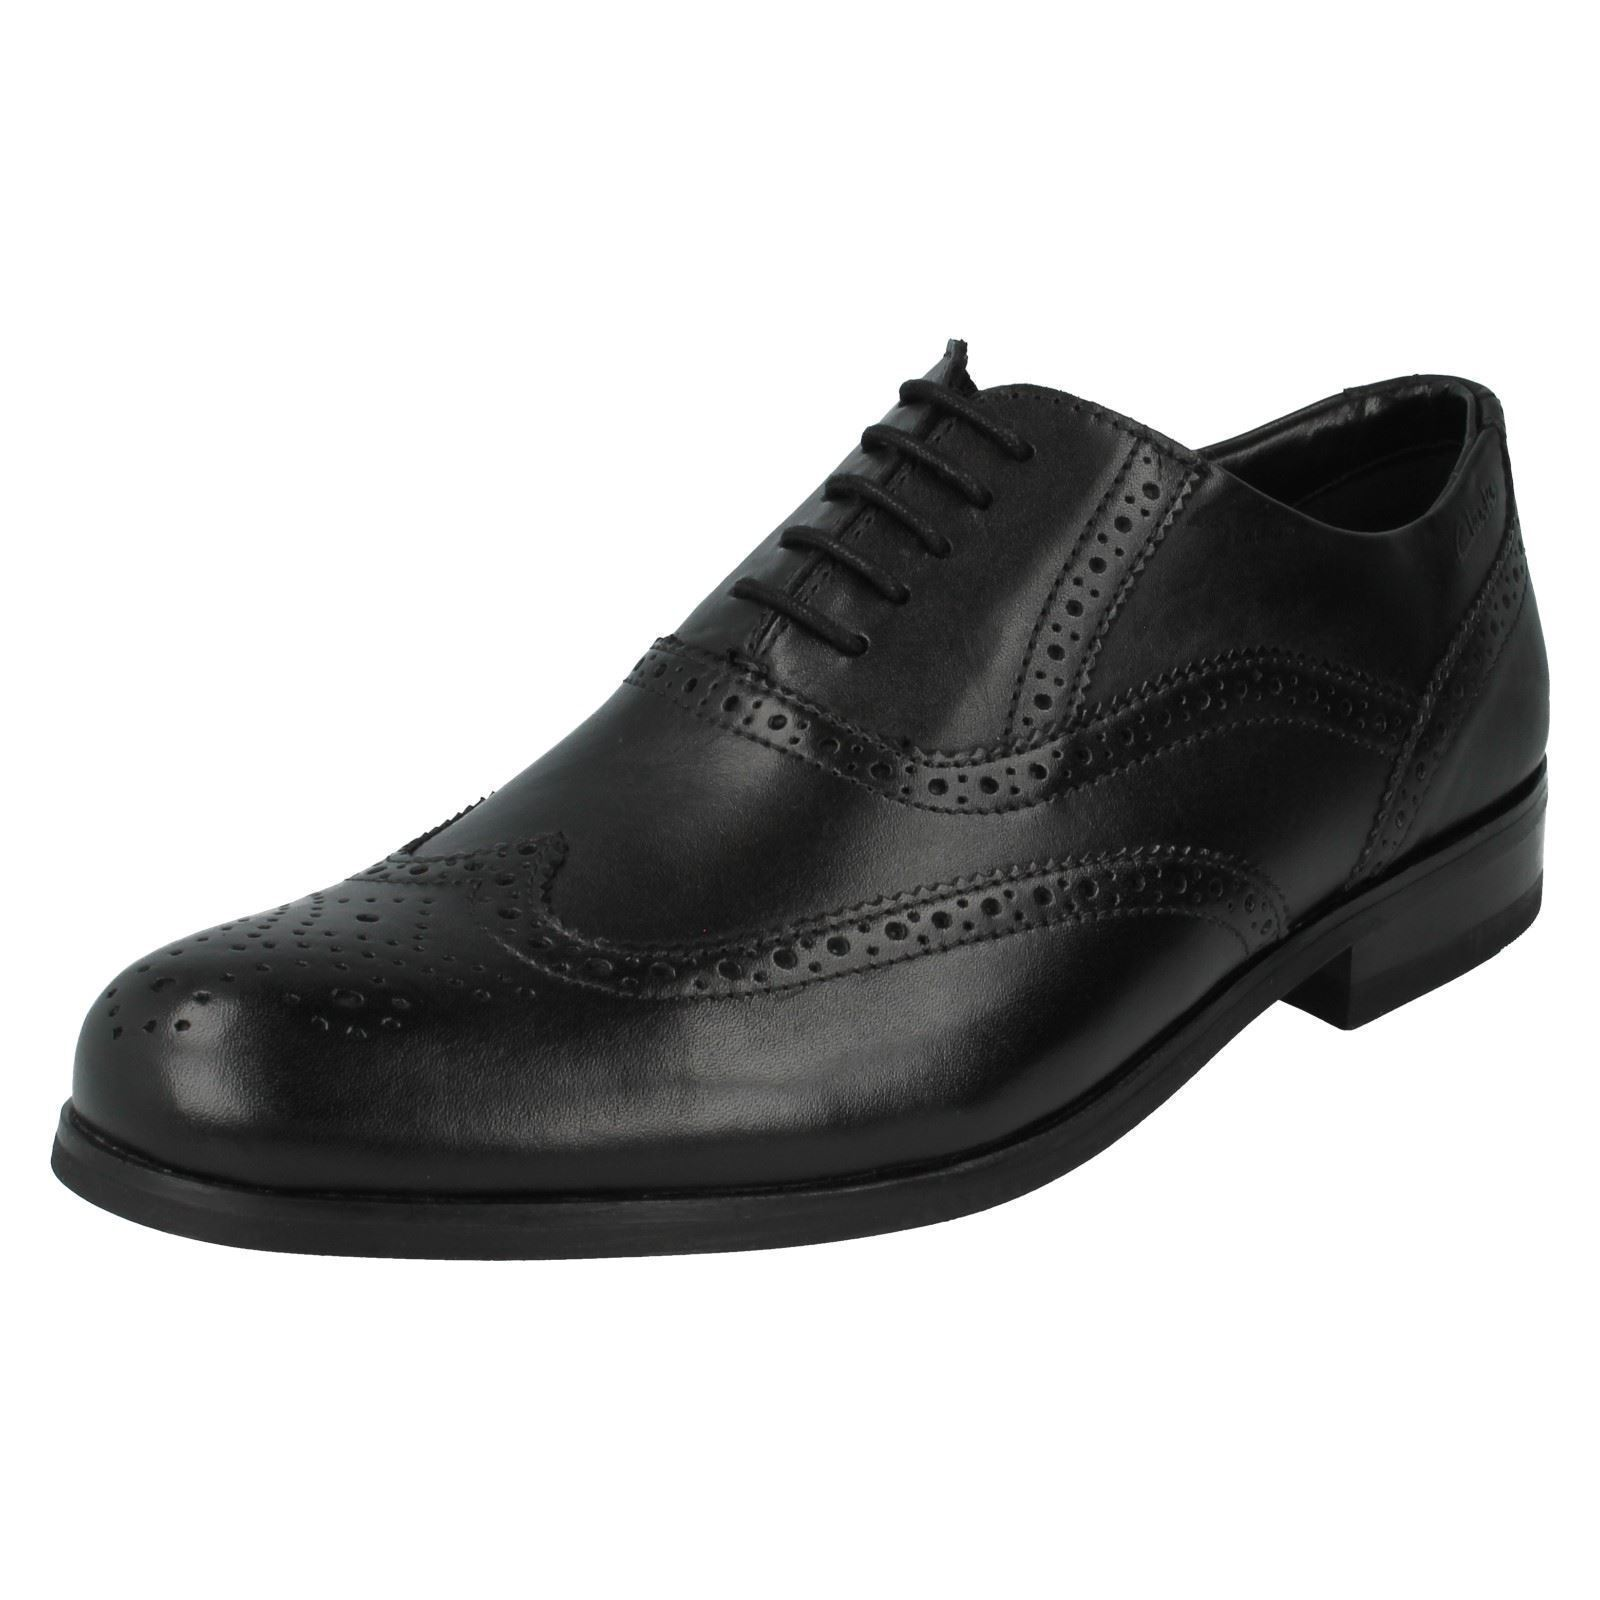 MENS BLACK LEATHER LACE UP BROGUE SHOES BY CLARKS BRINT BROGUE G FIT